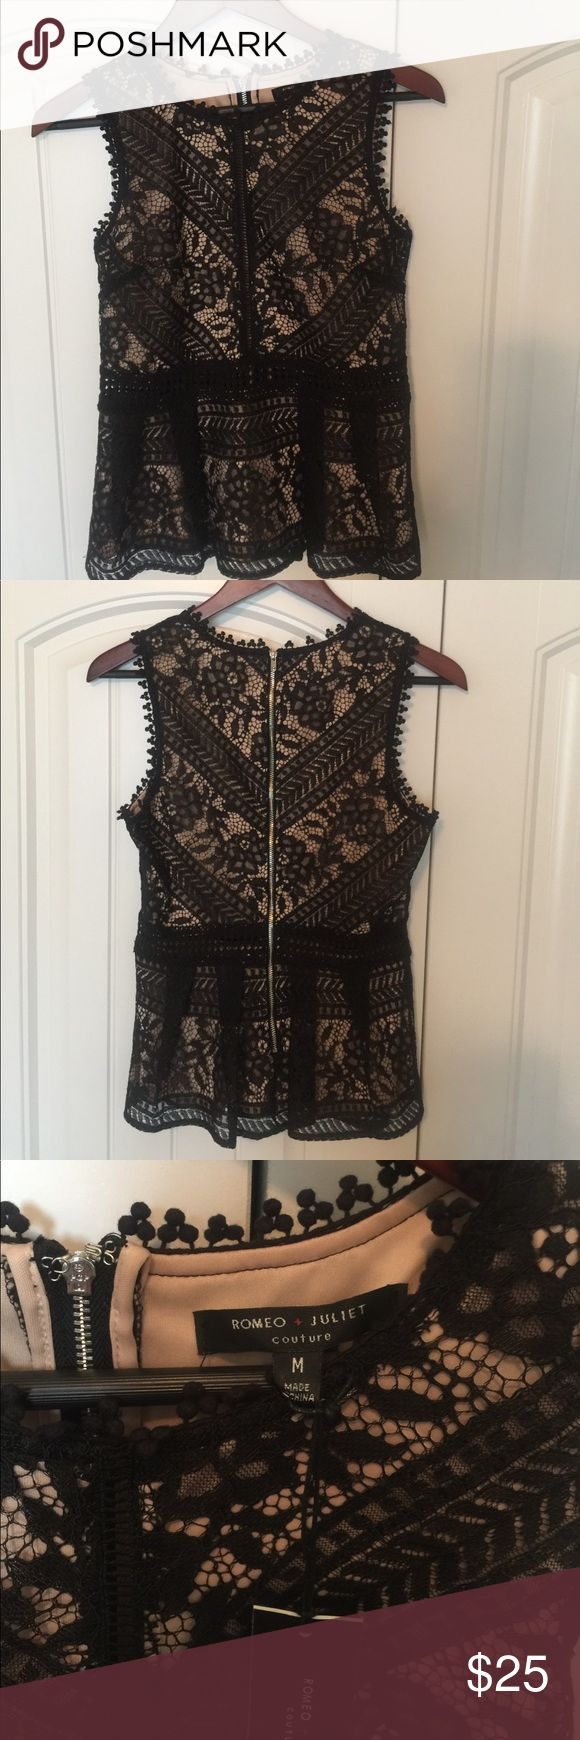 Romeo & Juliet Couture Lace top Black lace top by Romeo & Juliet Couture. Has nude cami behind the lace. Open cutout down the chest and around the waist that shows some skin ( shown in 4th pic).  Fitted through the body with a slight flare at the waist. Romeo & Juliet Couture Tops Blouses